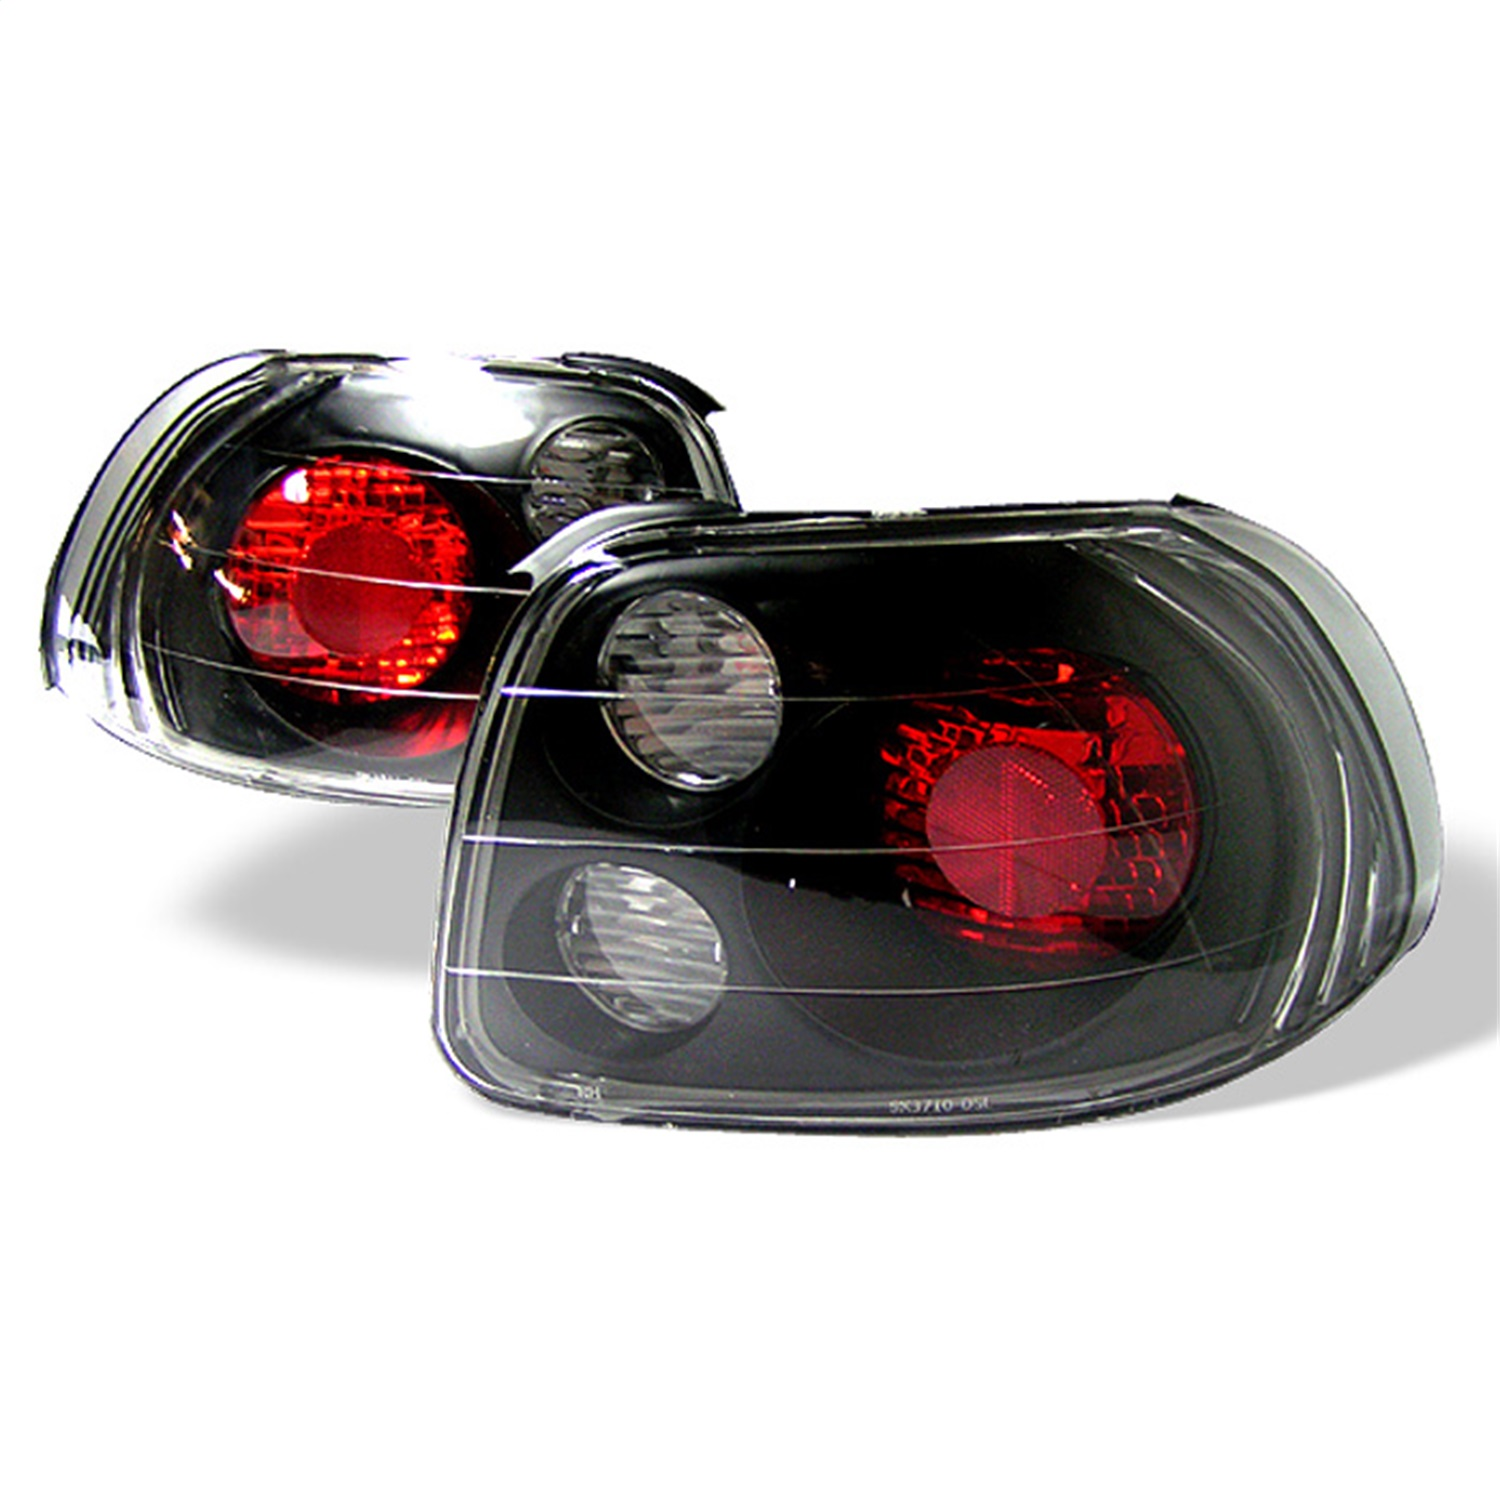 Spyder Auto 5005168 Euro Style Tail Lights Fits 93-97 Civic del Sol